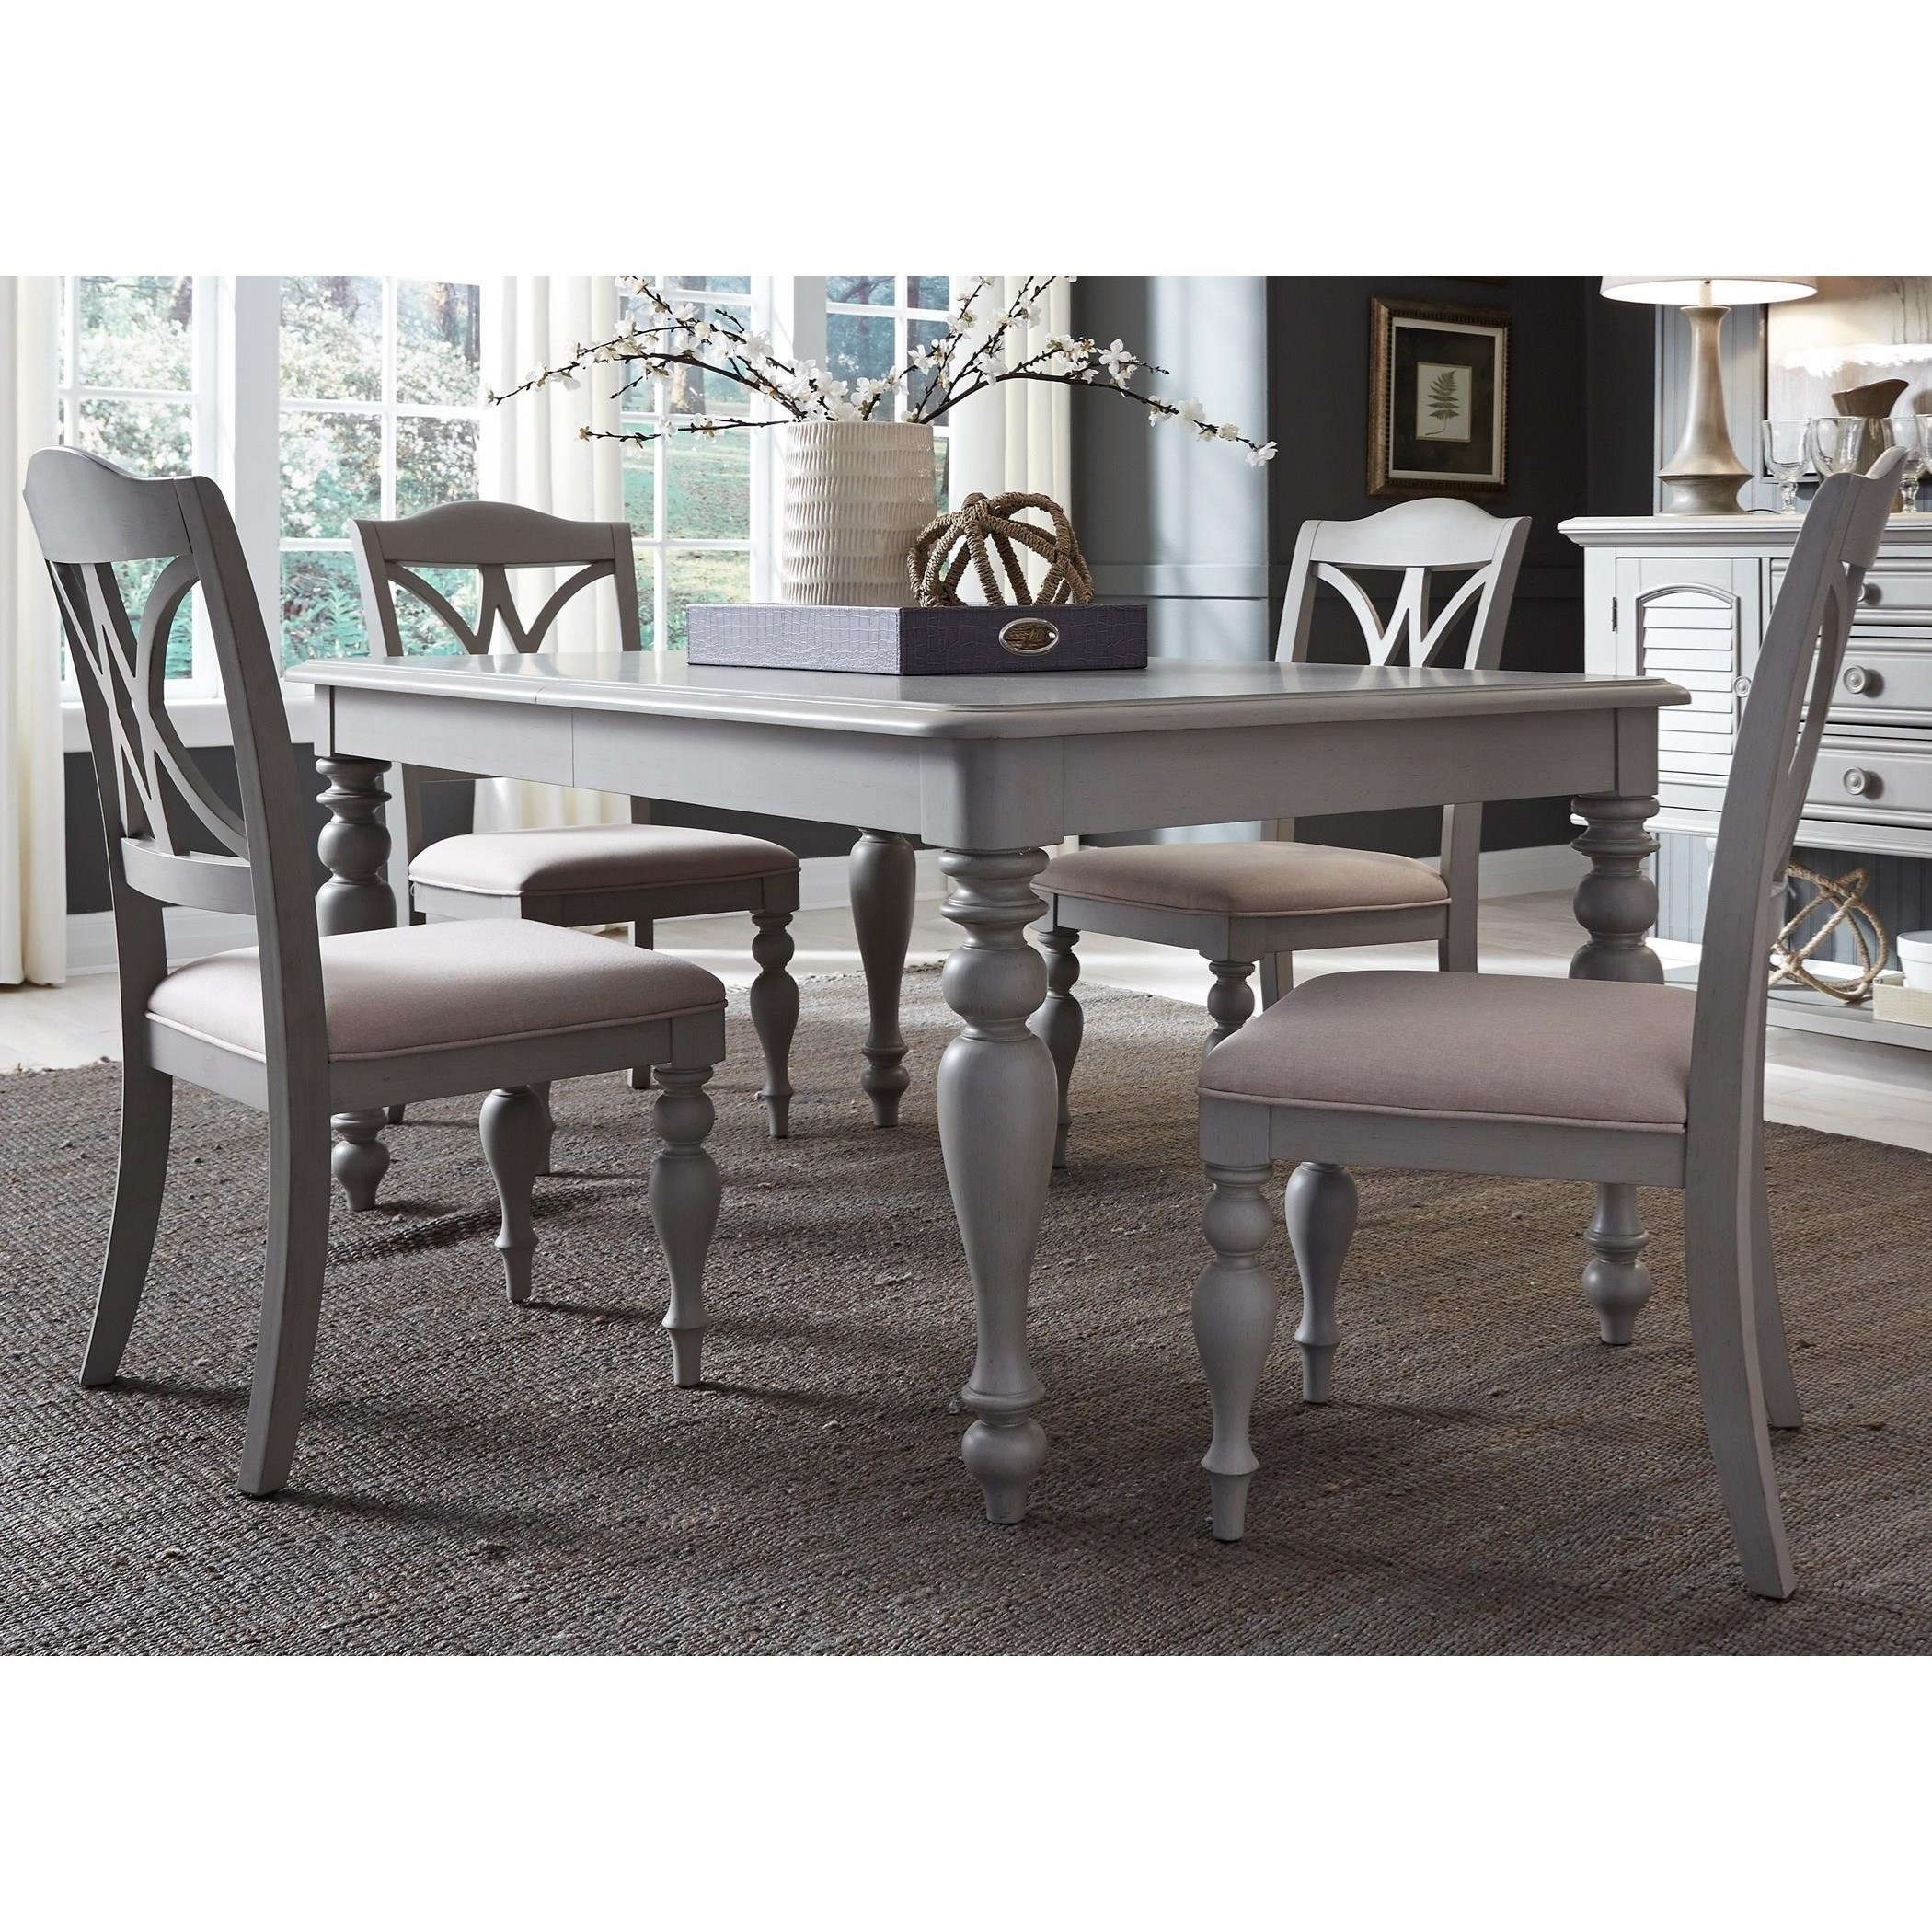 Summer House Dining 5 Piece Rectangular Table Set  by Liberty Furniture at Northeast Factory Direct